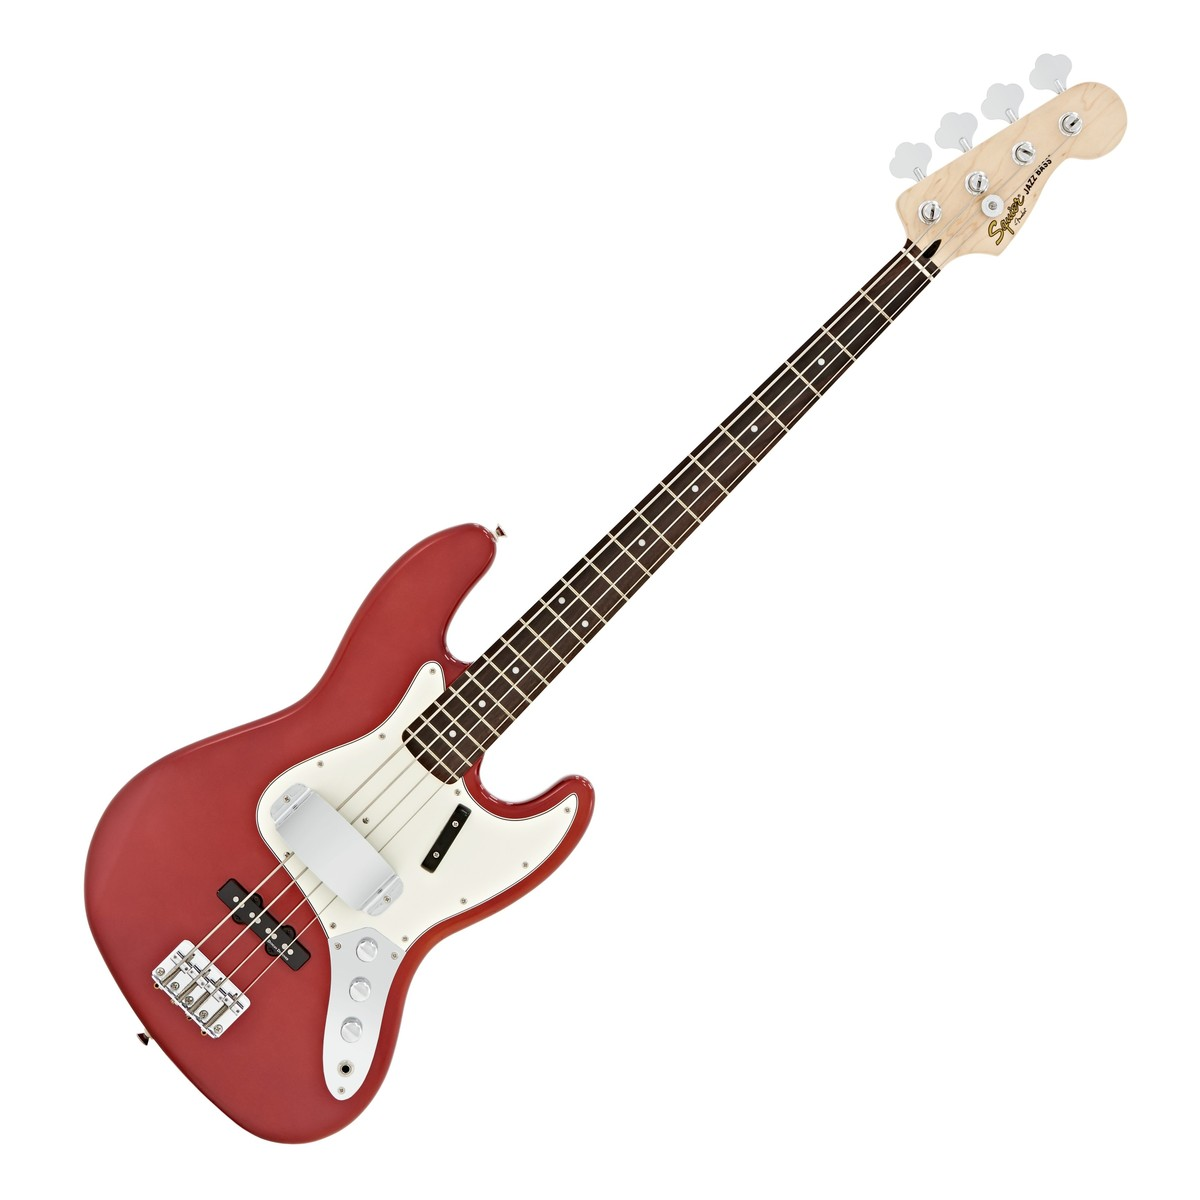 squier by fender vintage modified jazz bass candy apple red fsr at. Black Bedroom Furniture Sets. Home Design Ideas